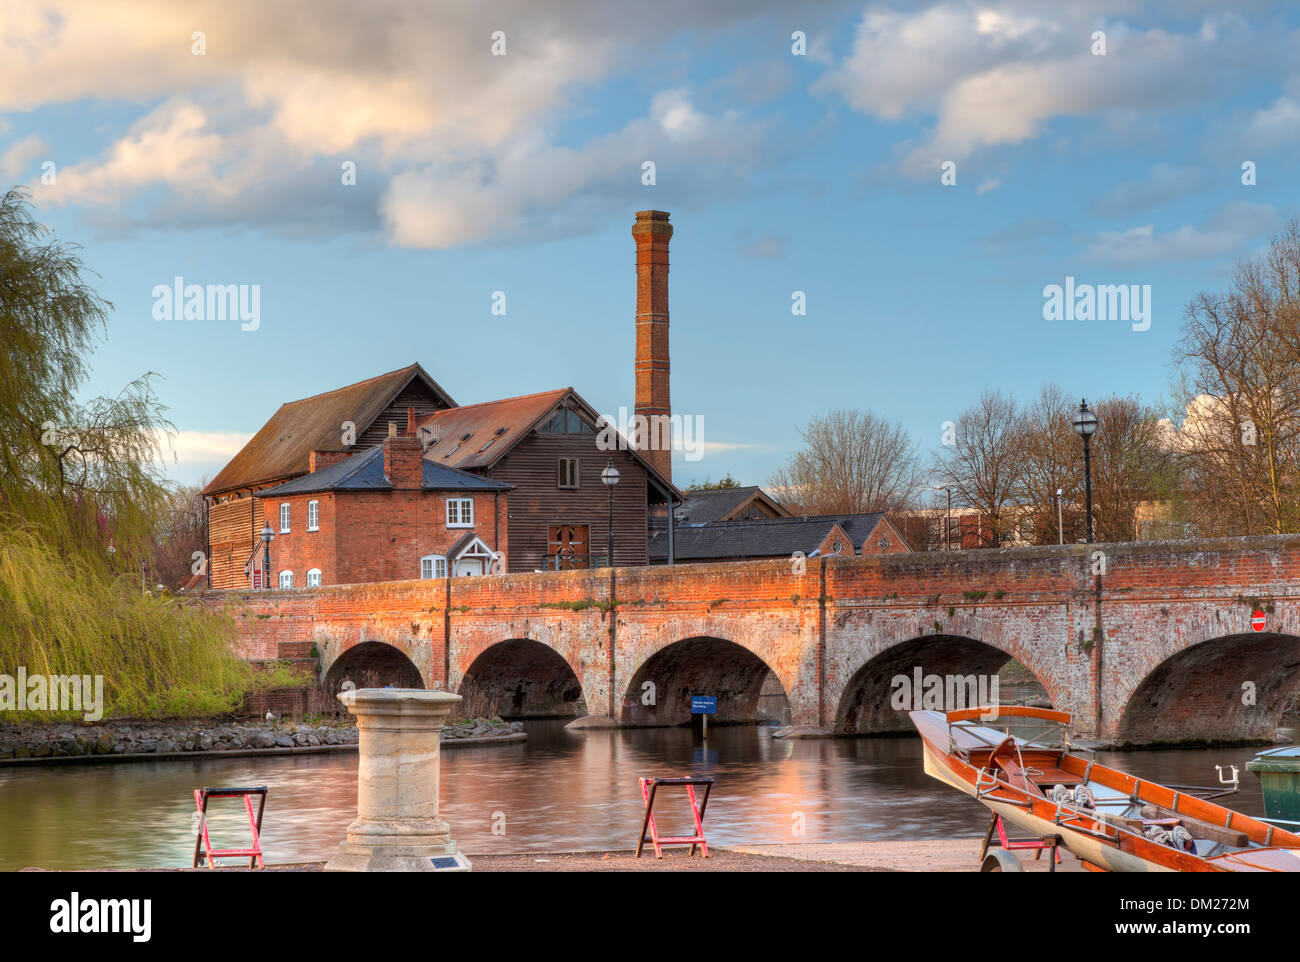 The old mill saw mill and foot bridge, Stratford upon Avon, Warwickshire, England. Stock Photo